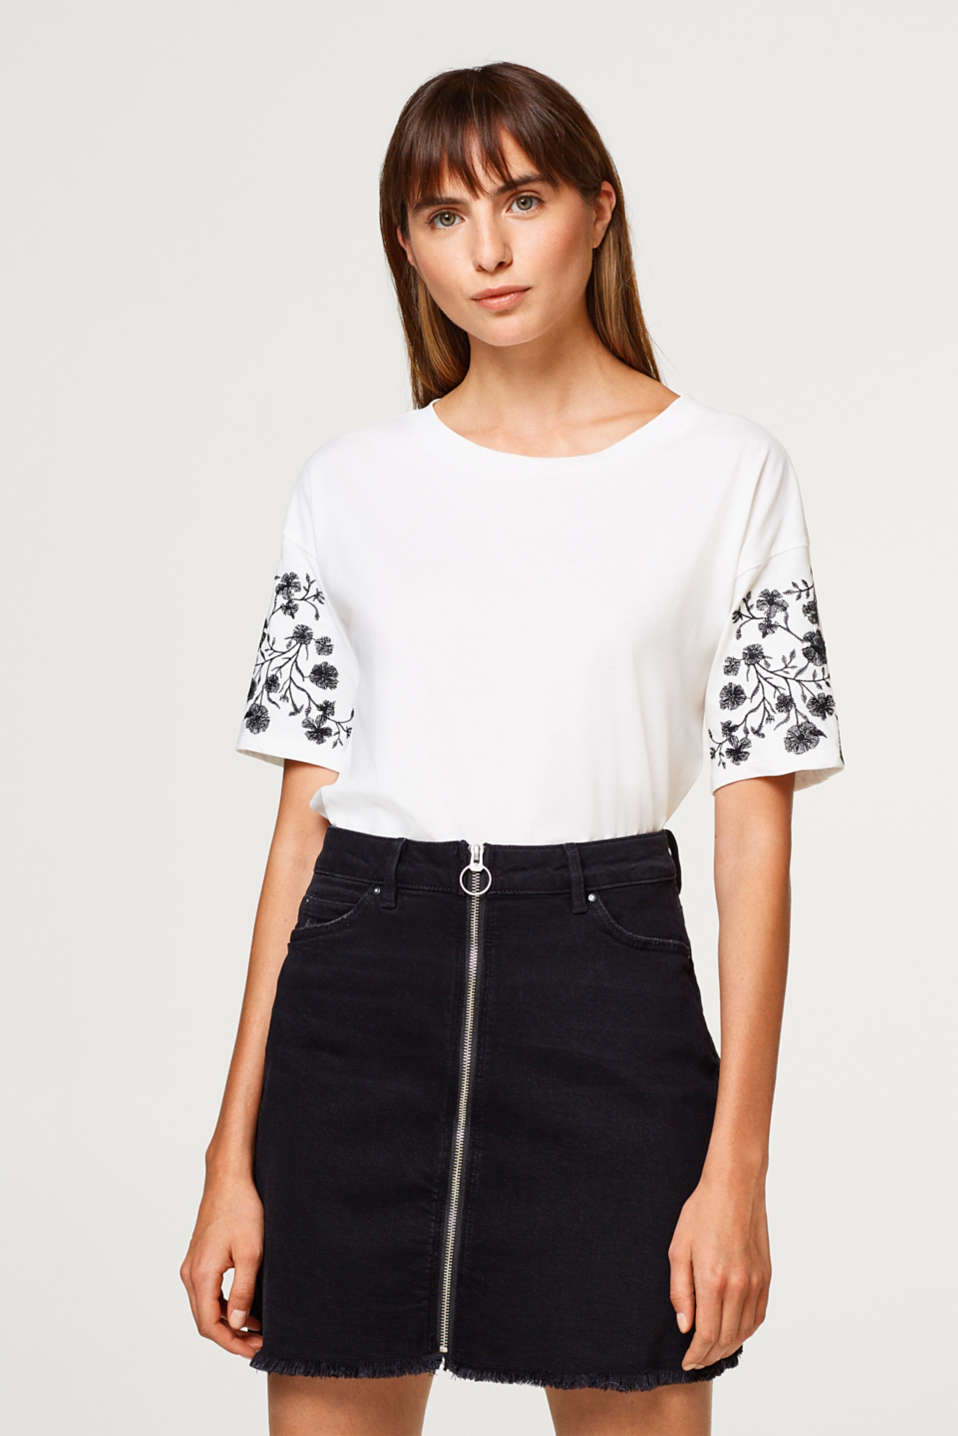 Esprit - Top with embroidery, 100% cotton